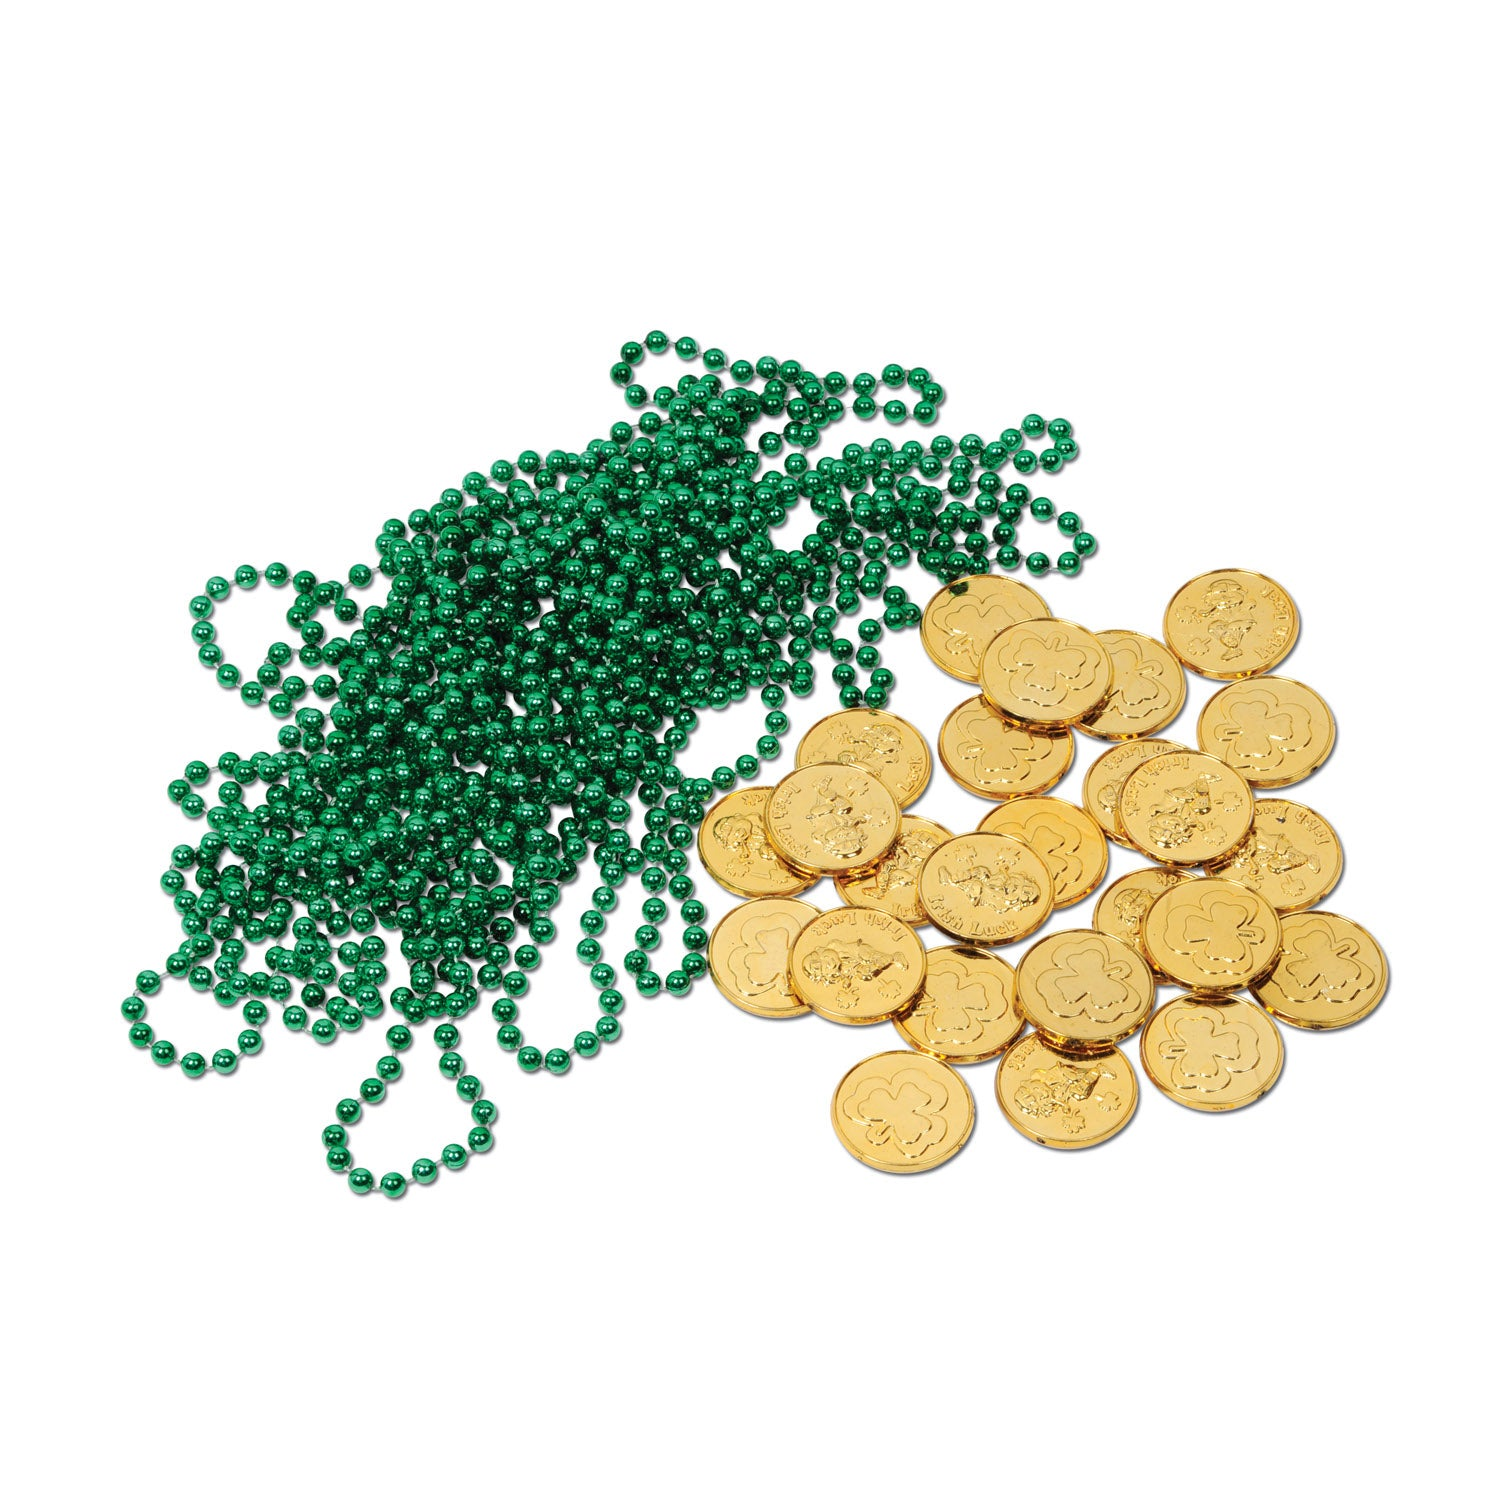 Leprechaun Loot (37/Pkg) by Beistle - St. Patricks Day Theme Decorations